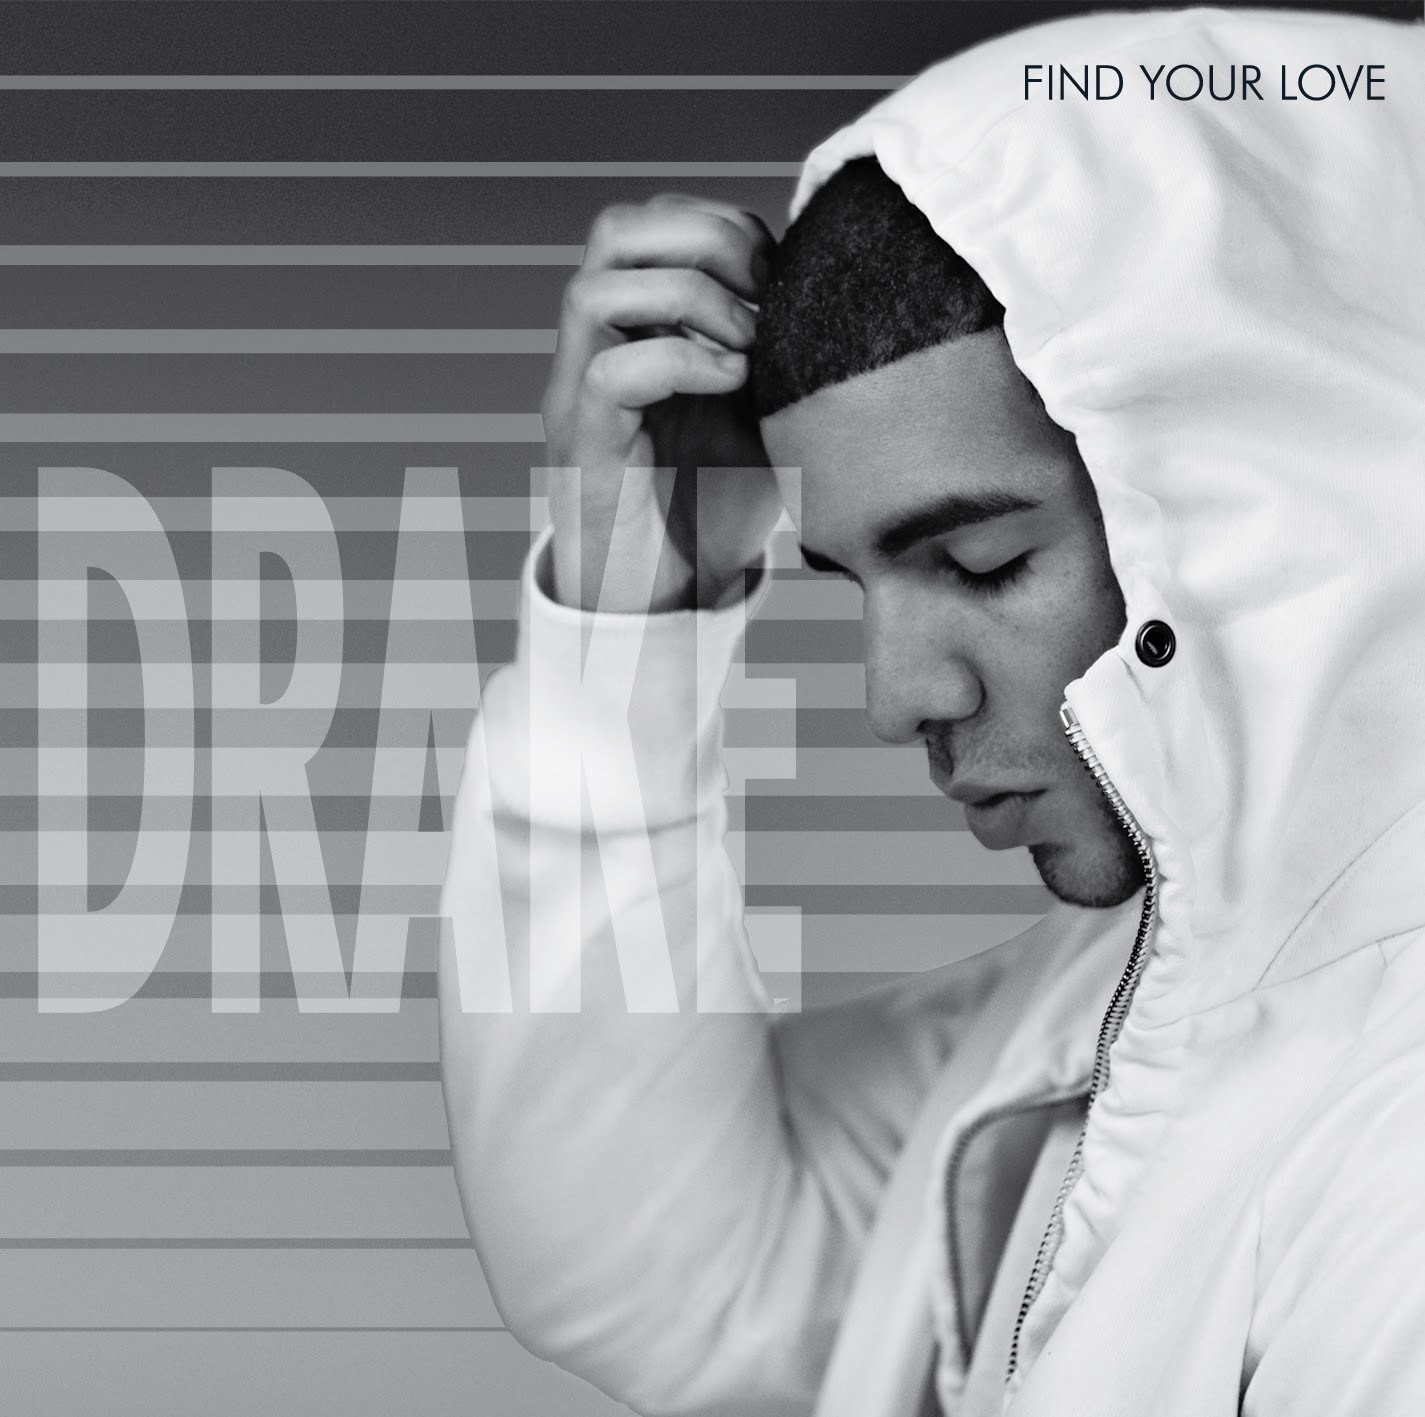 """New Music Video: Drake- """"Find Your Love"""""""